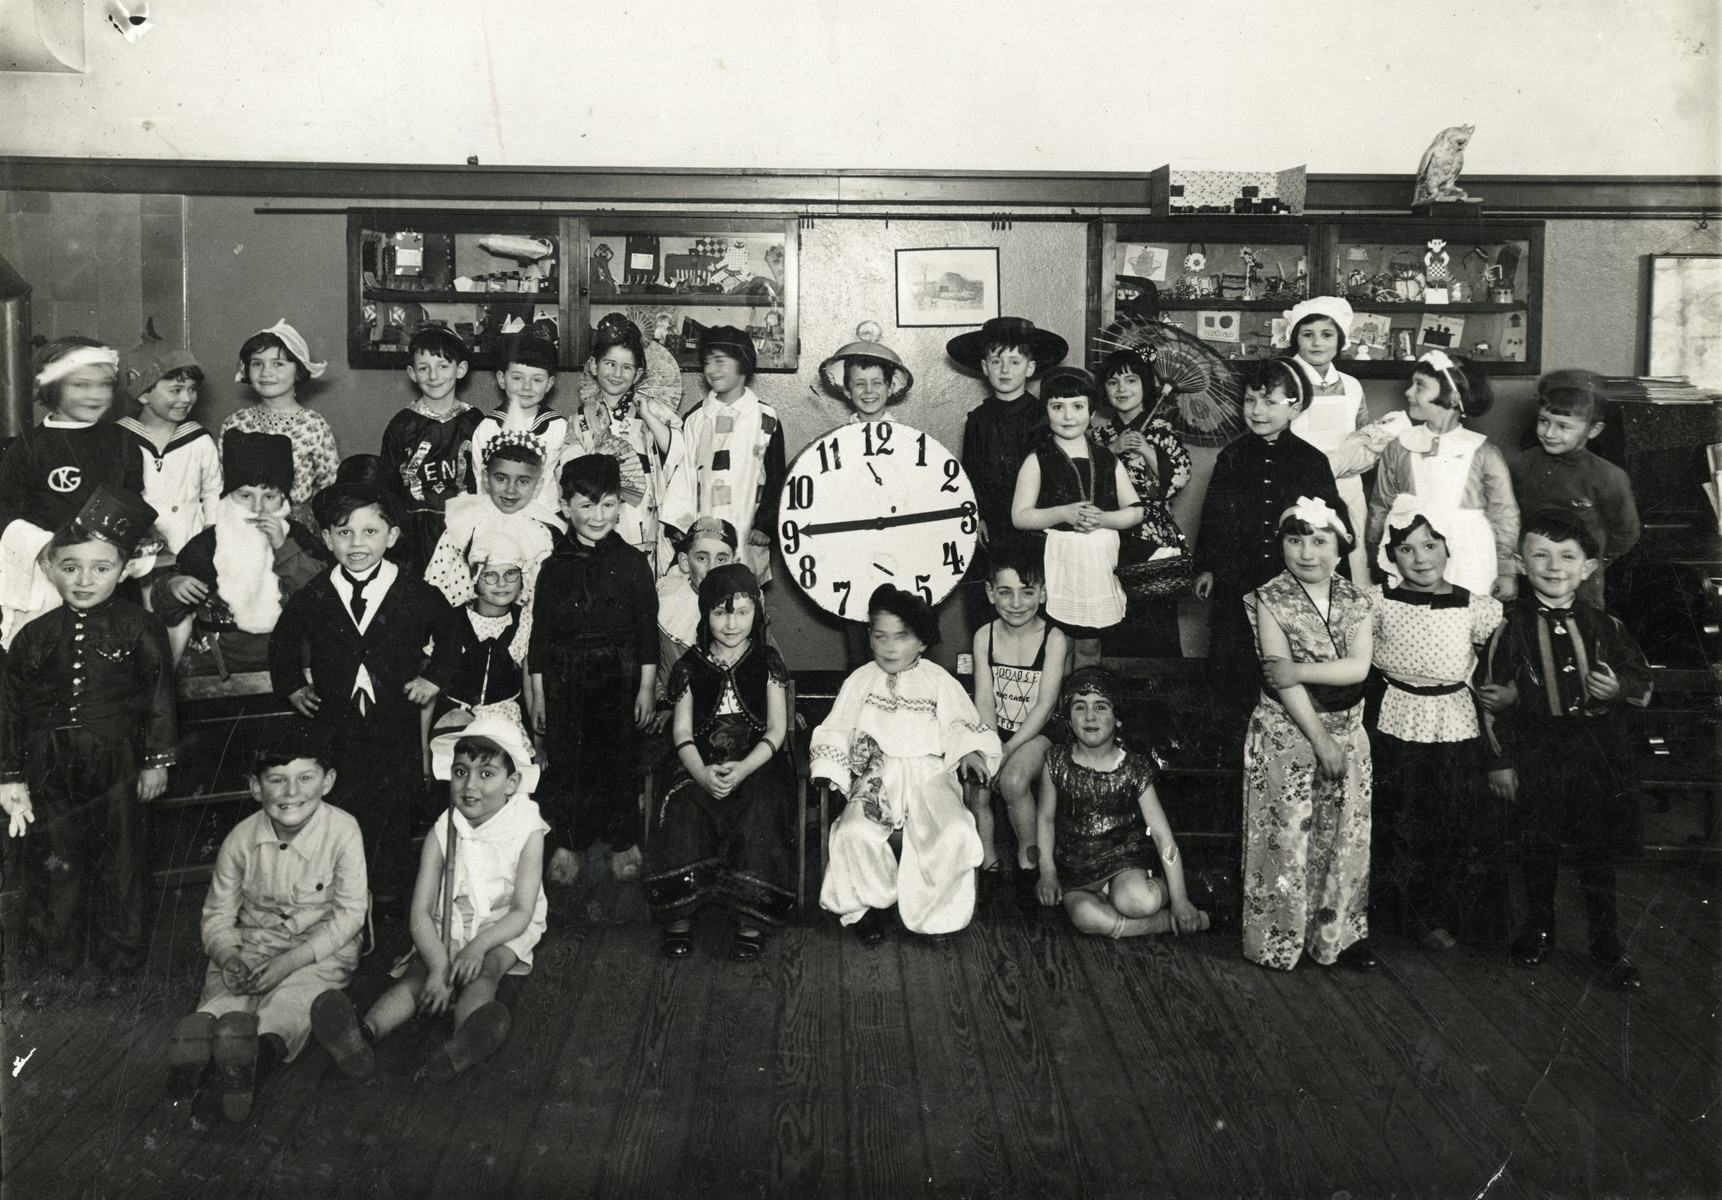 Children in the Jewish elementary school in Amsterdam pose in their Purim costumes.  Among those pictured is Elchanan Tal in a white hat and dressed as an Israeli pioneer